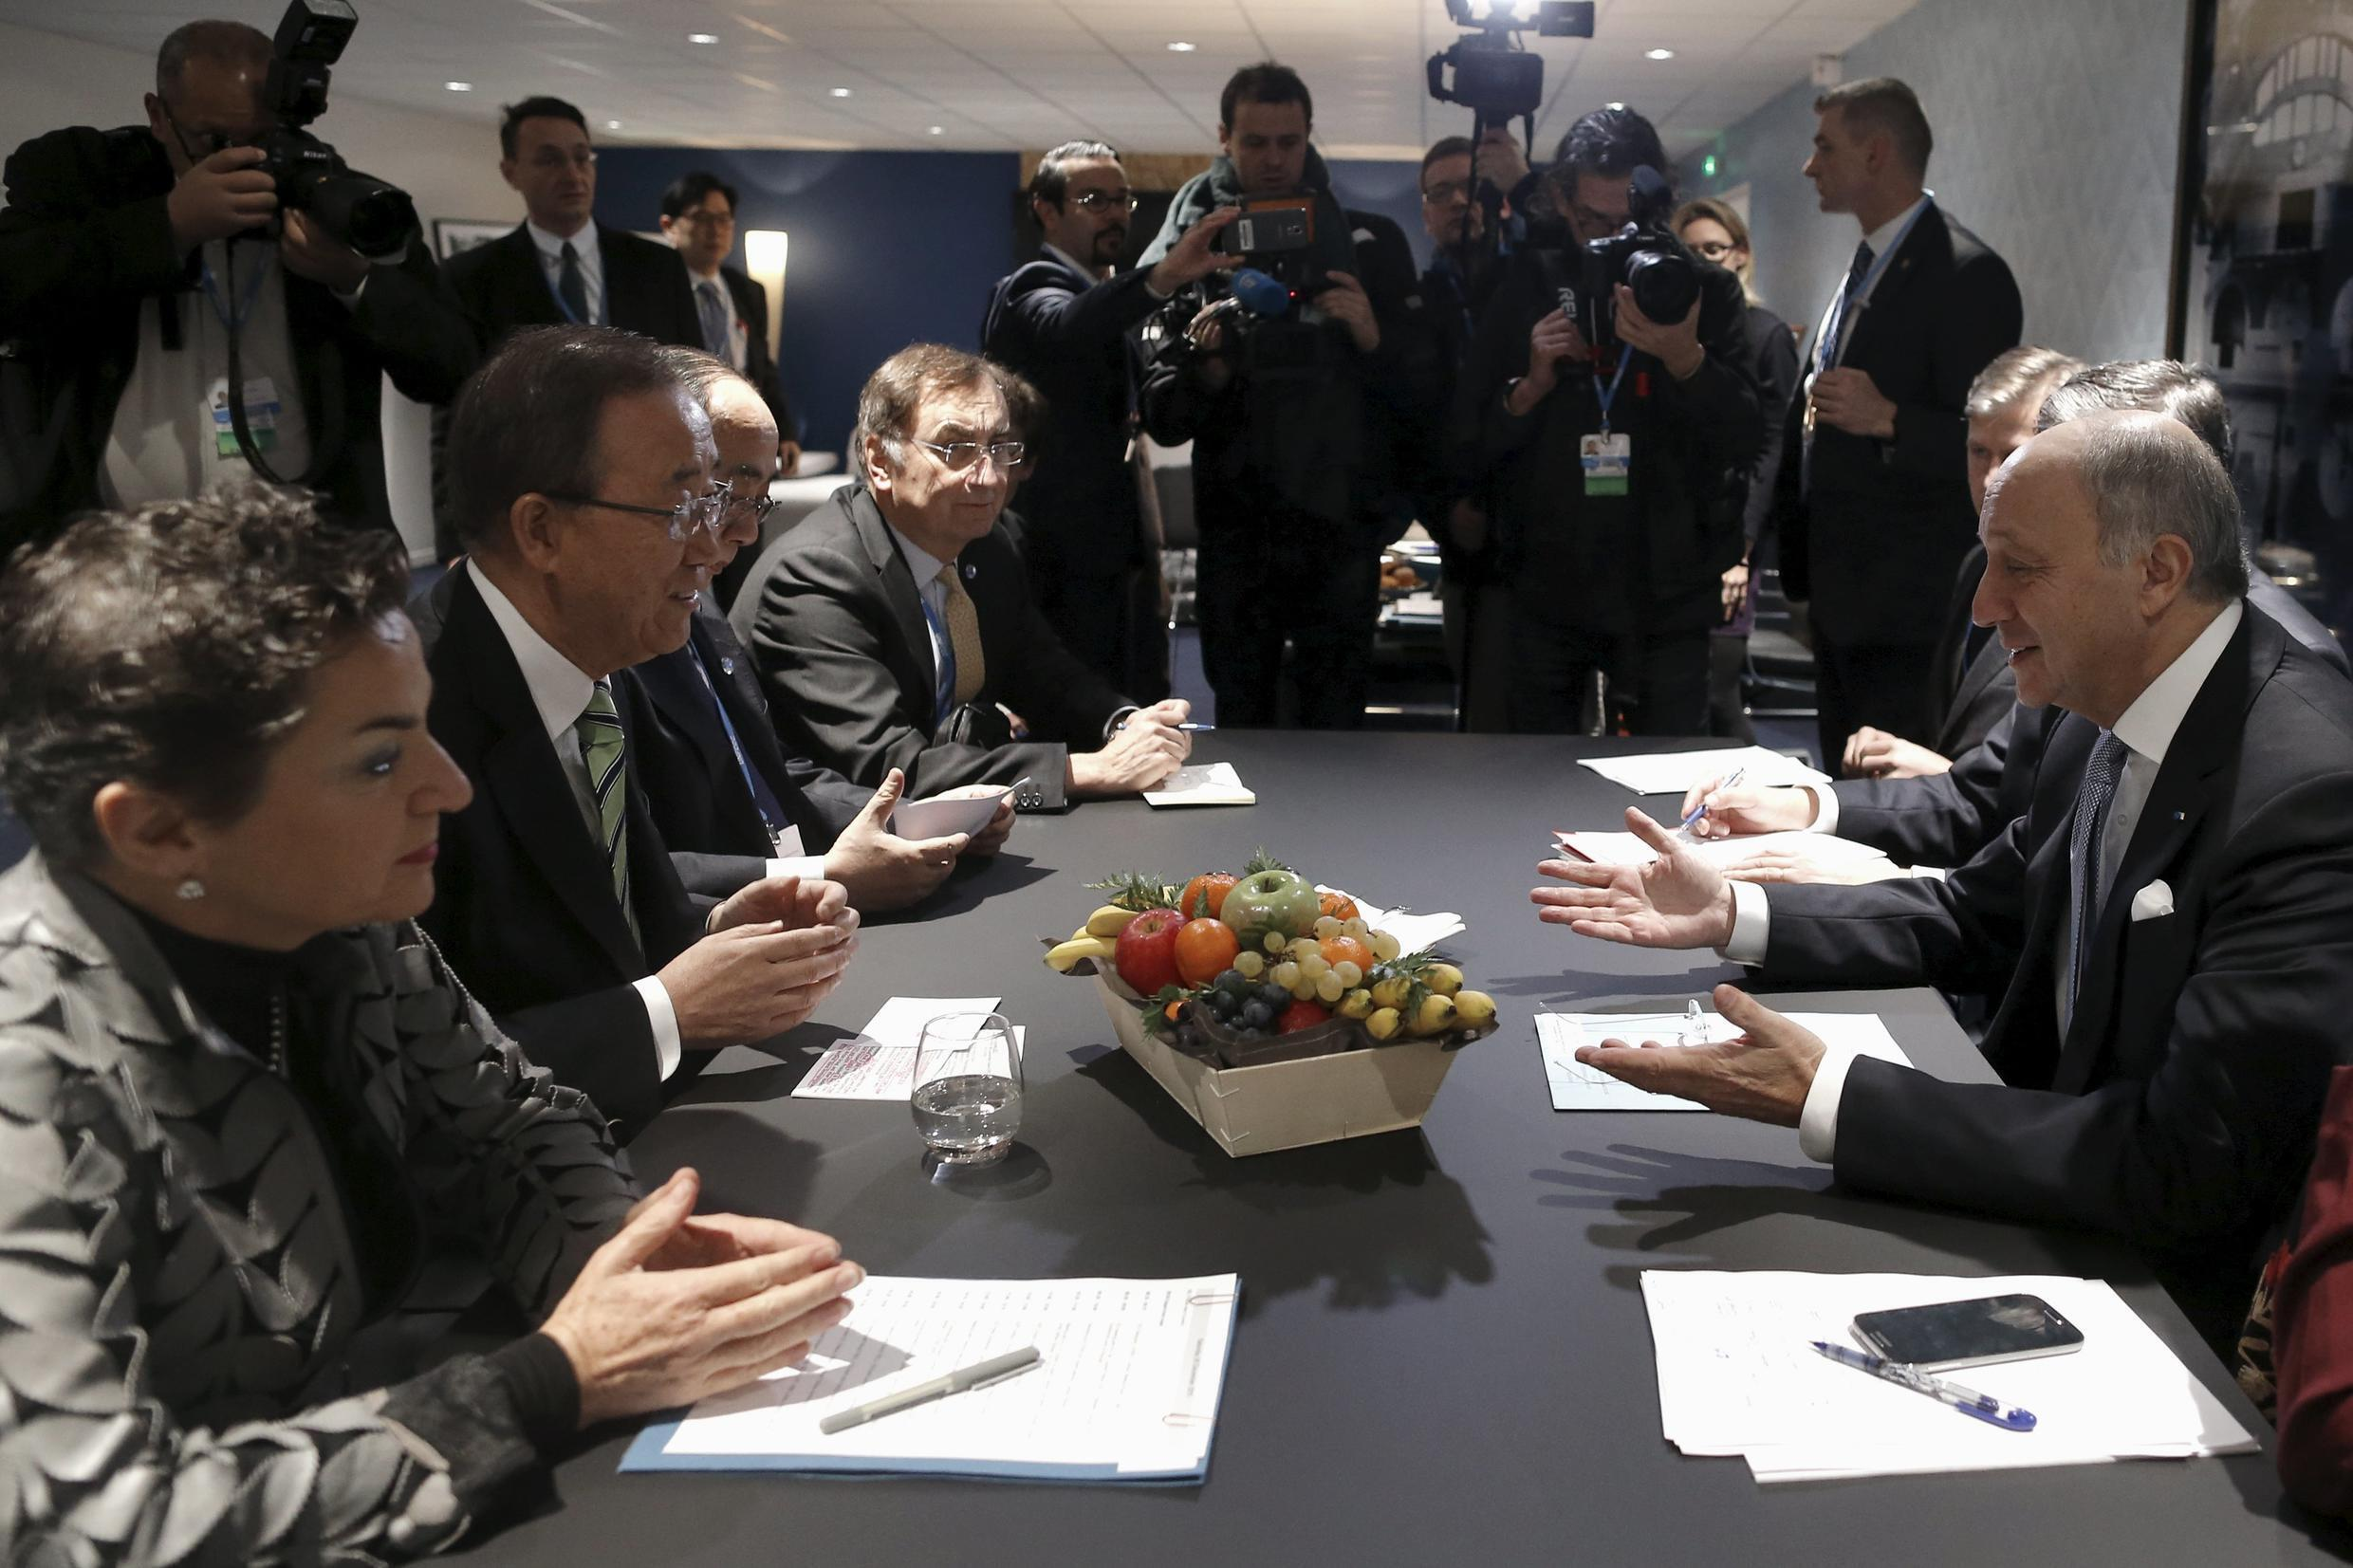 French Foreign Minister Fabius talks to United Nations Secretary General Ban and Executive Secretary of the UNFCCC Figueres during the COP21 at Le Bourget, near Paris, France, December 5, 2015.